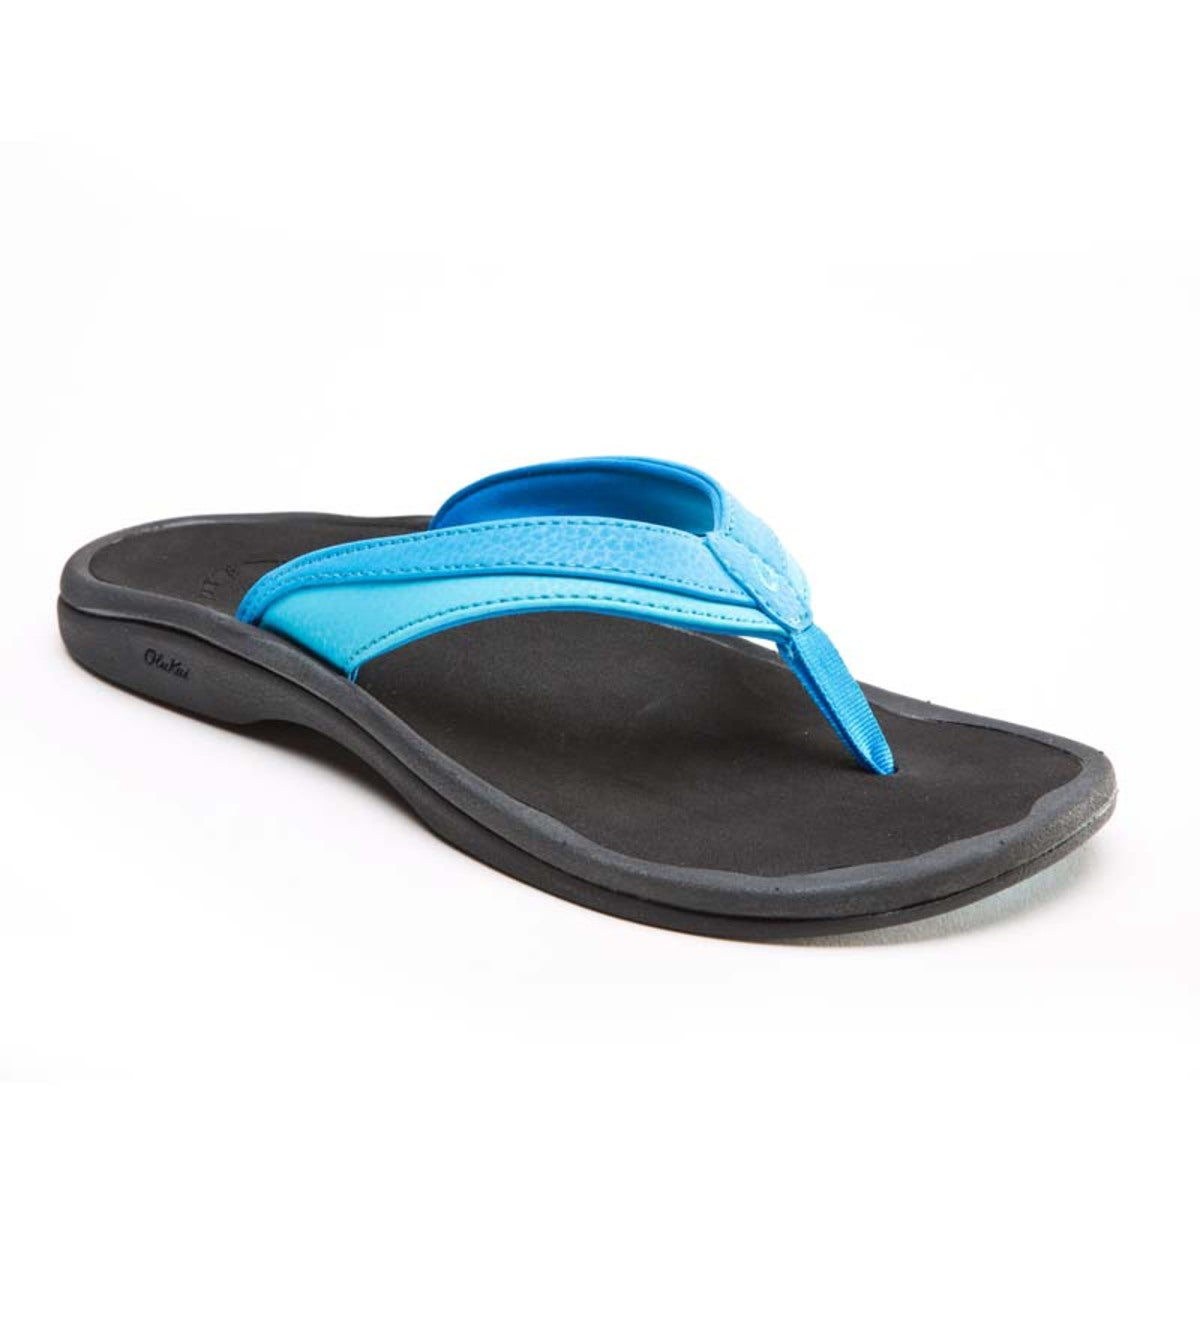 Women's OluKai Ohana Flip-Flop Sandals - Tropical Blue/Ice - Size 5